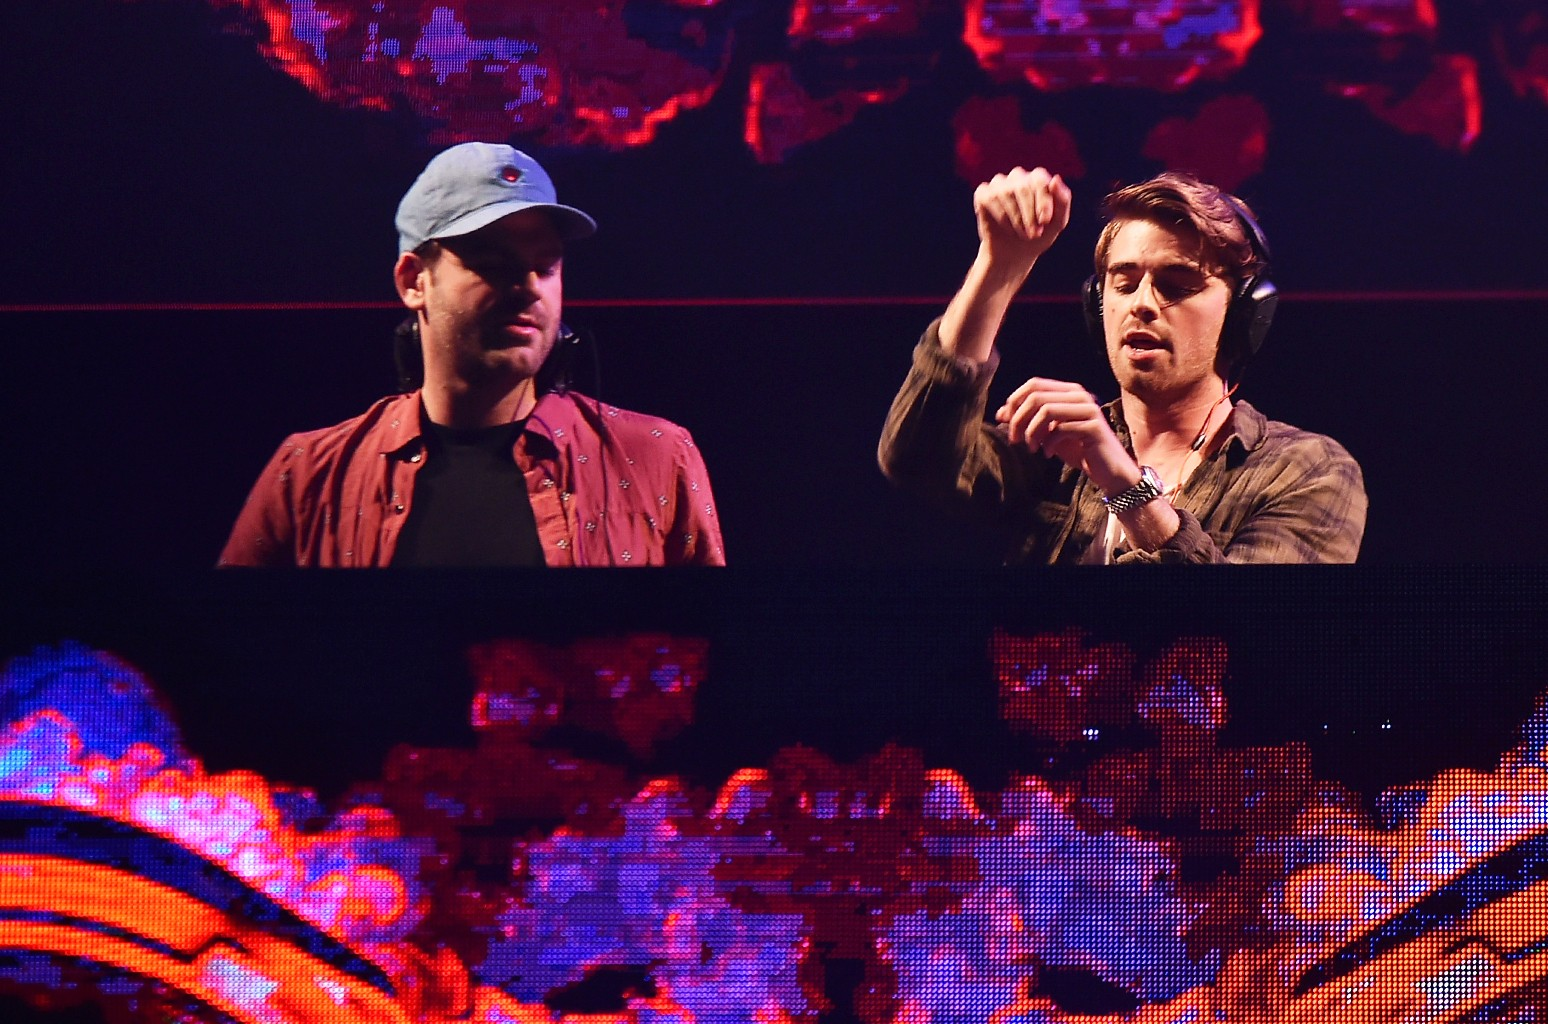 The Chainsmokers in 2016